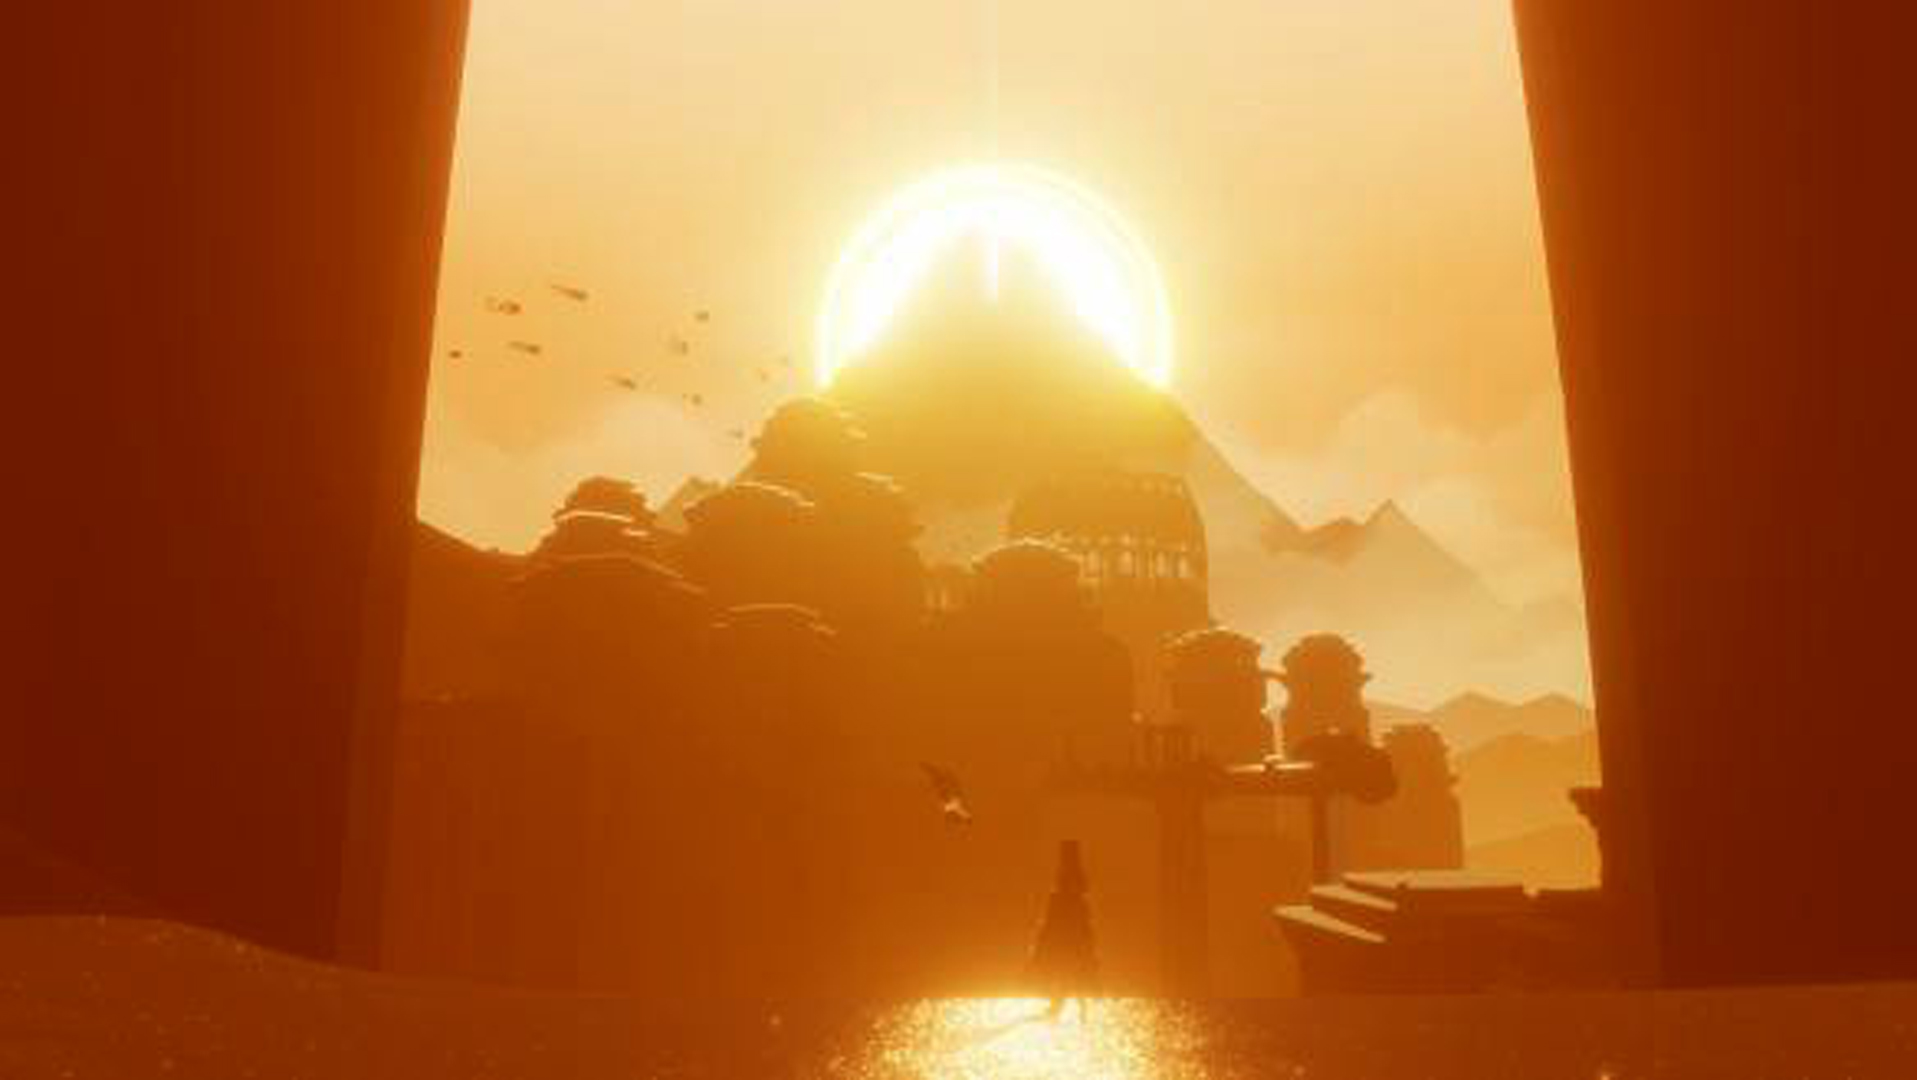 ©, thatgamecompany and Sony Computer Entertainment America LLC, Journey